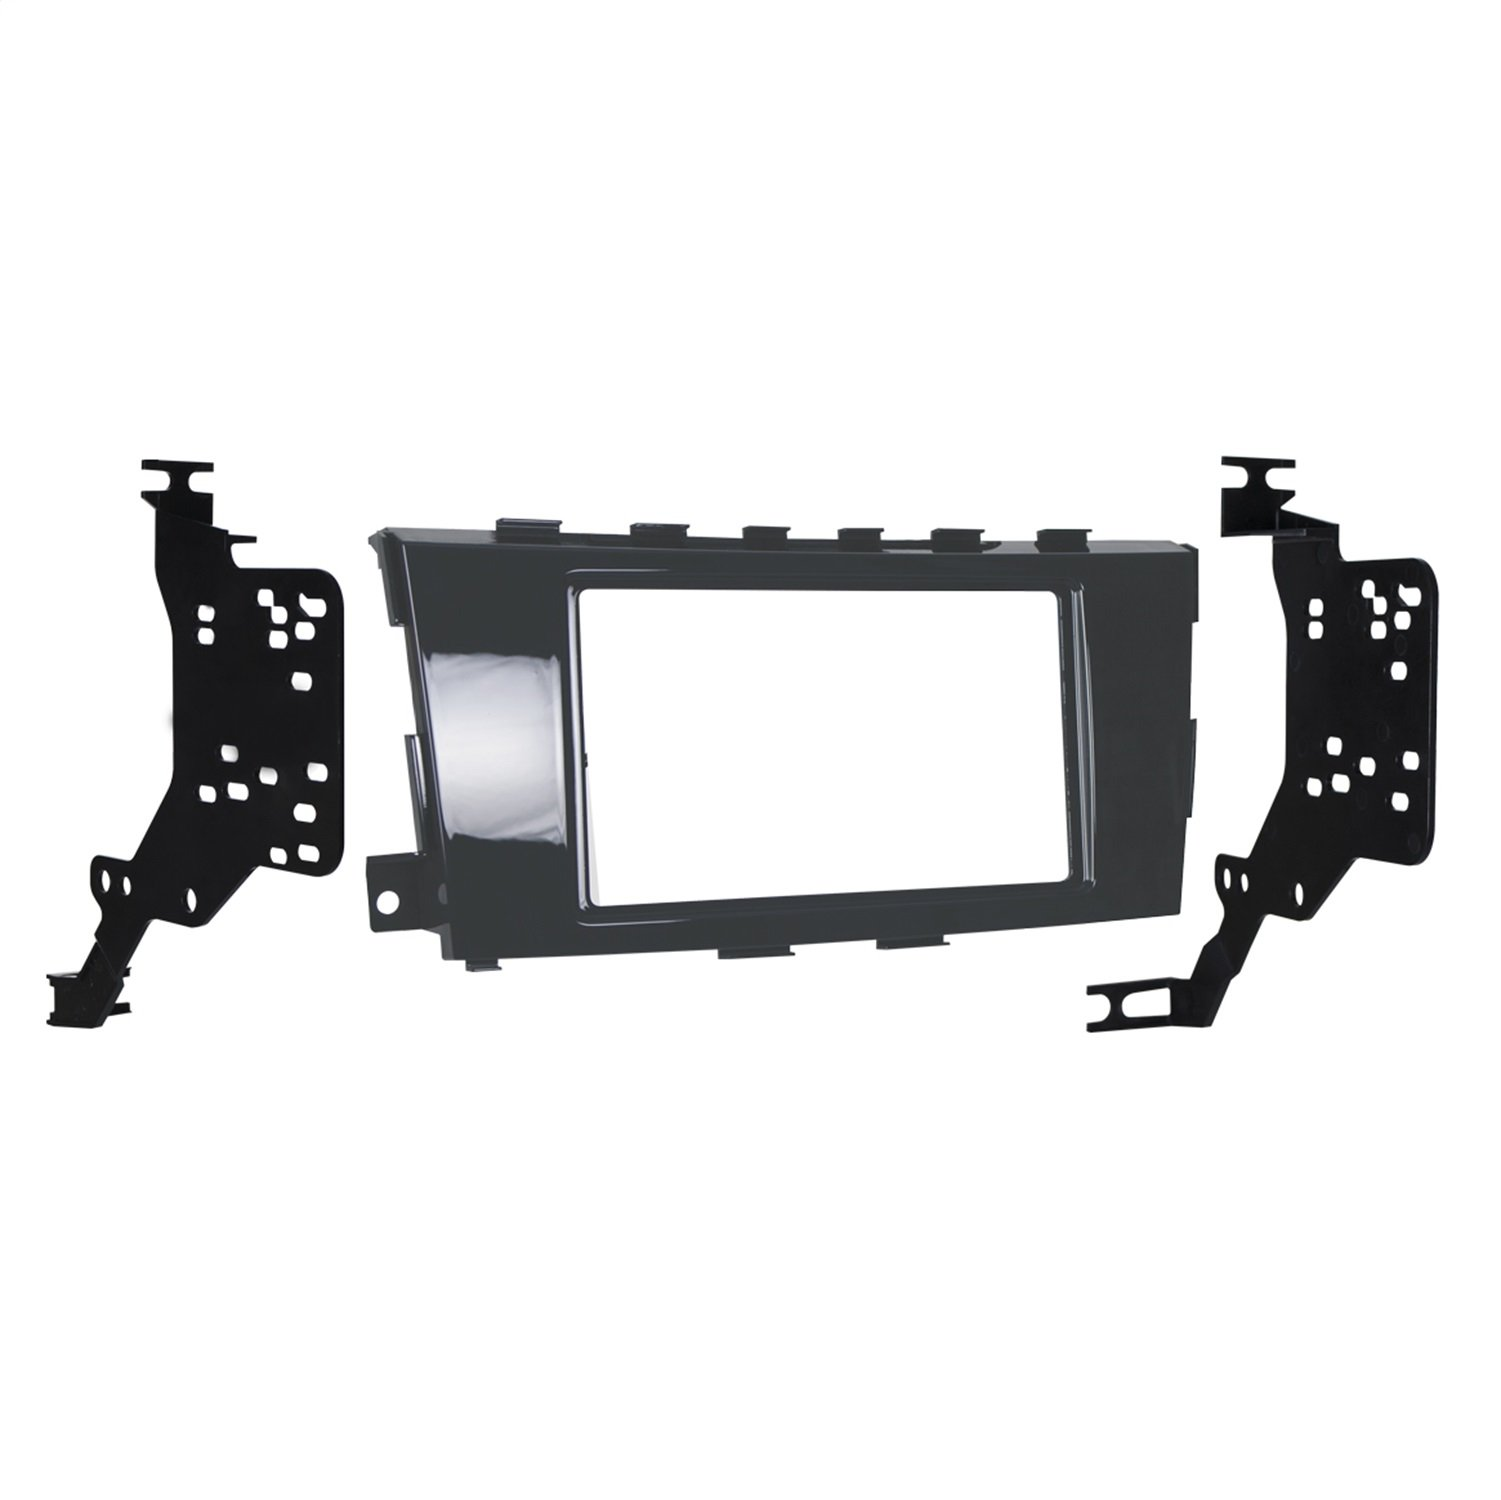 Metra 95-7617GHG Double DIN Dash Kit for Select 2013-Up Nissan Altima Vehicles Black